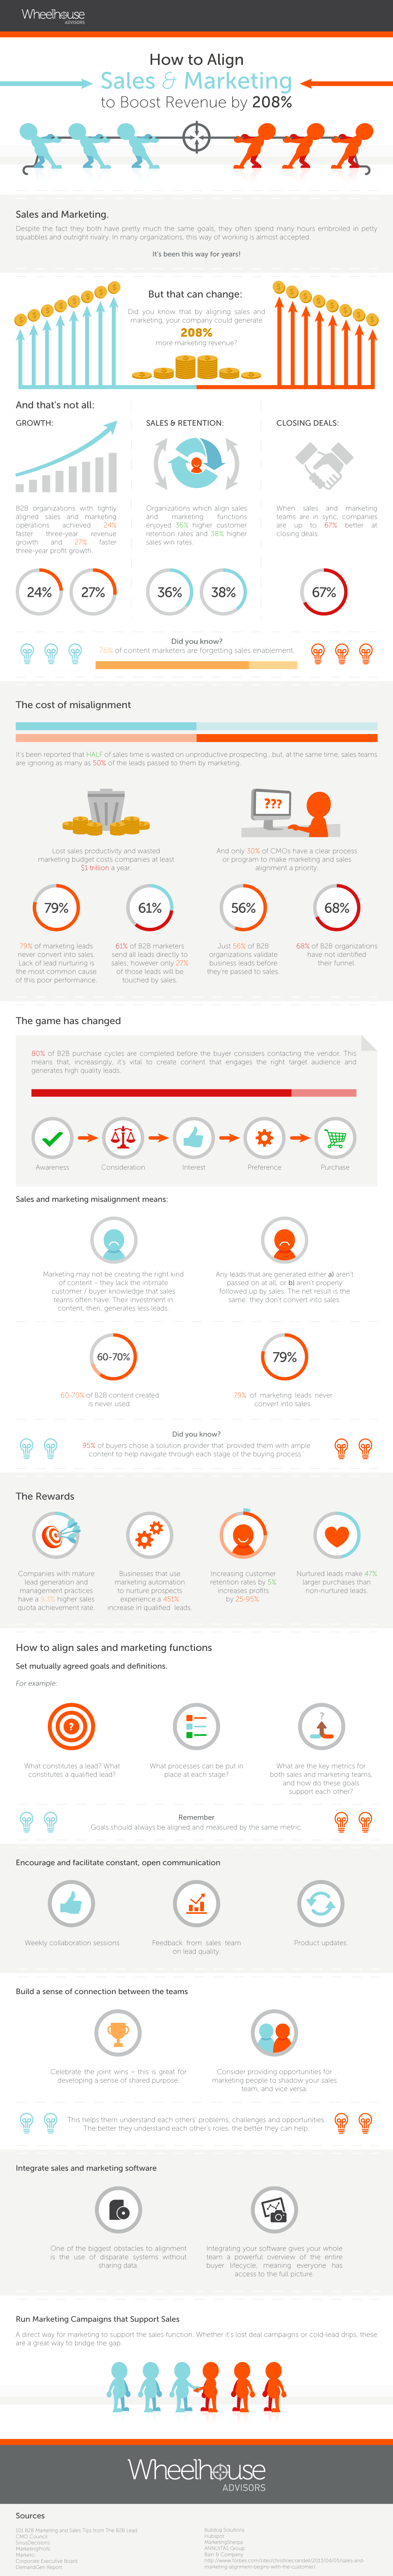 Align-sales-marketing-infographic